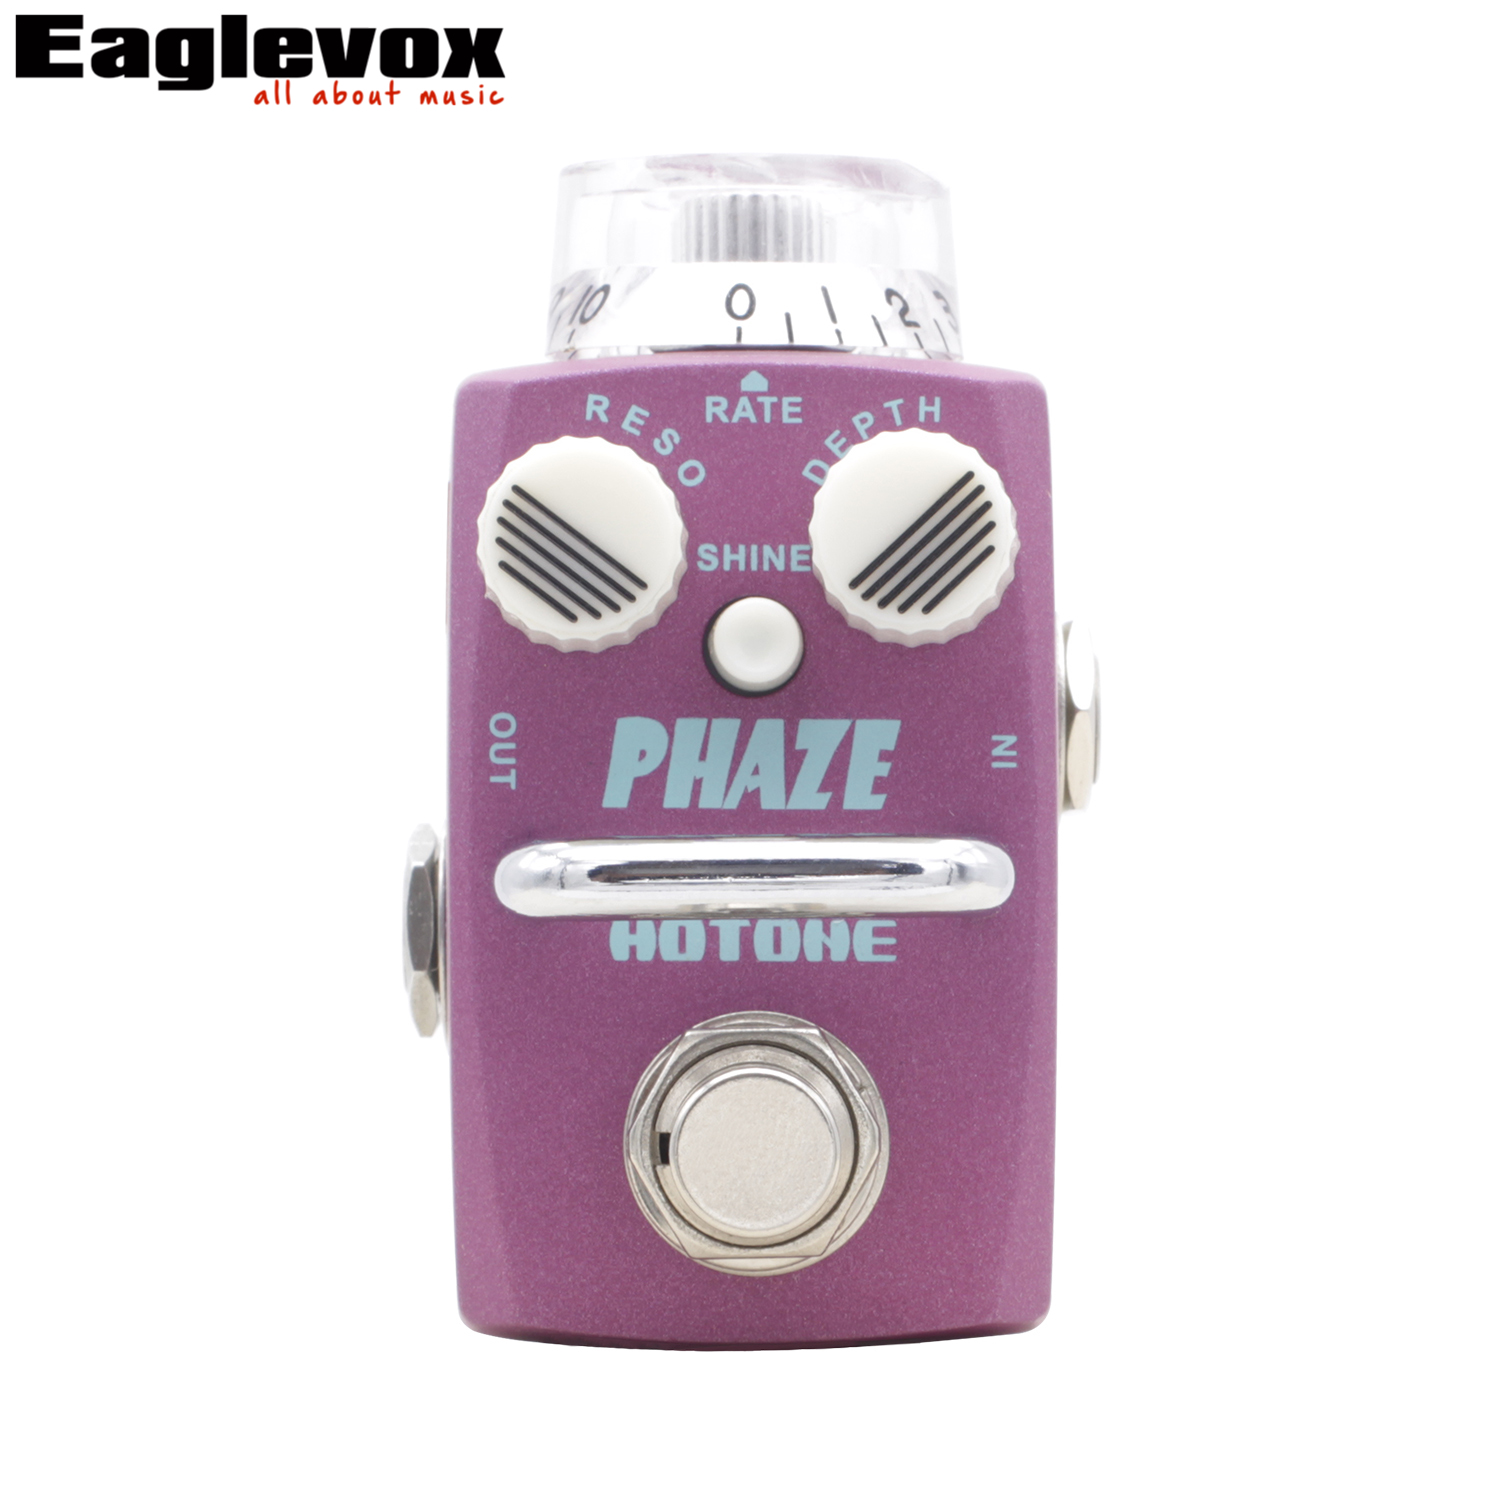 Hotone Phaze Analog Phaser Pedal for Guitar Effect True Bypass guitar effects guitar pedal Analog Phaser mooer ninety orange phaser guitar effect pedal micro analog effects true bypass with free connector and footswitch topper